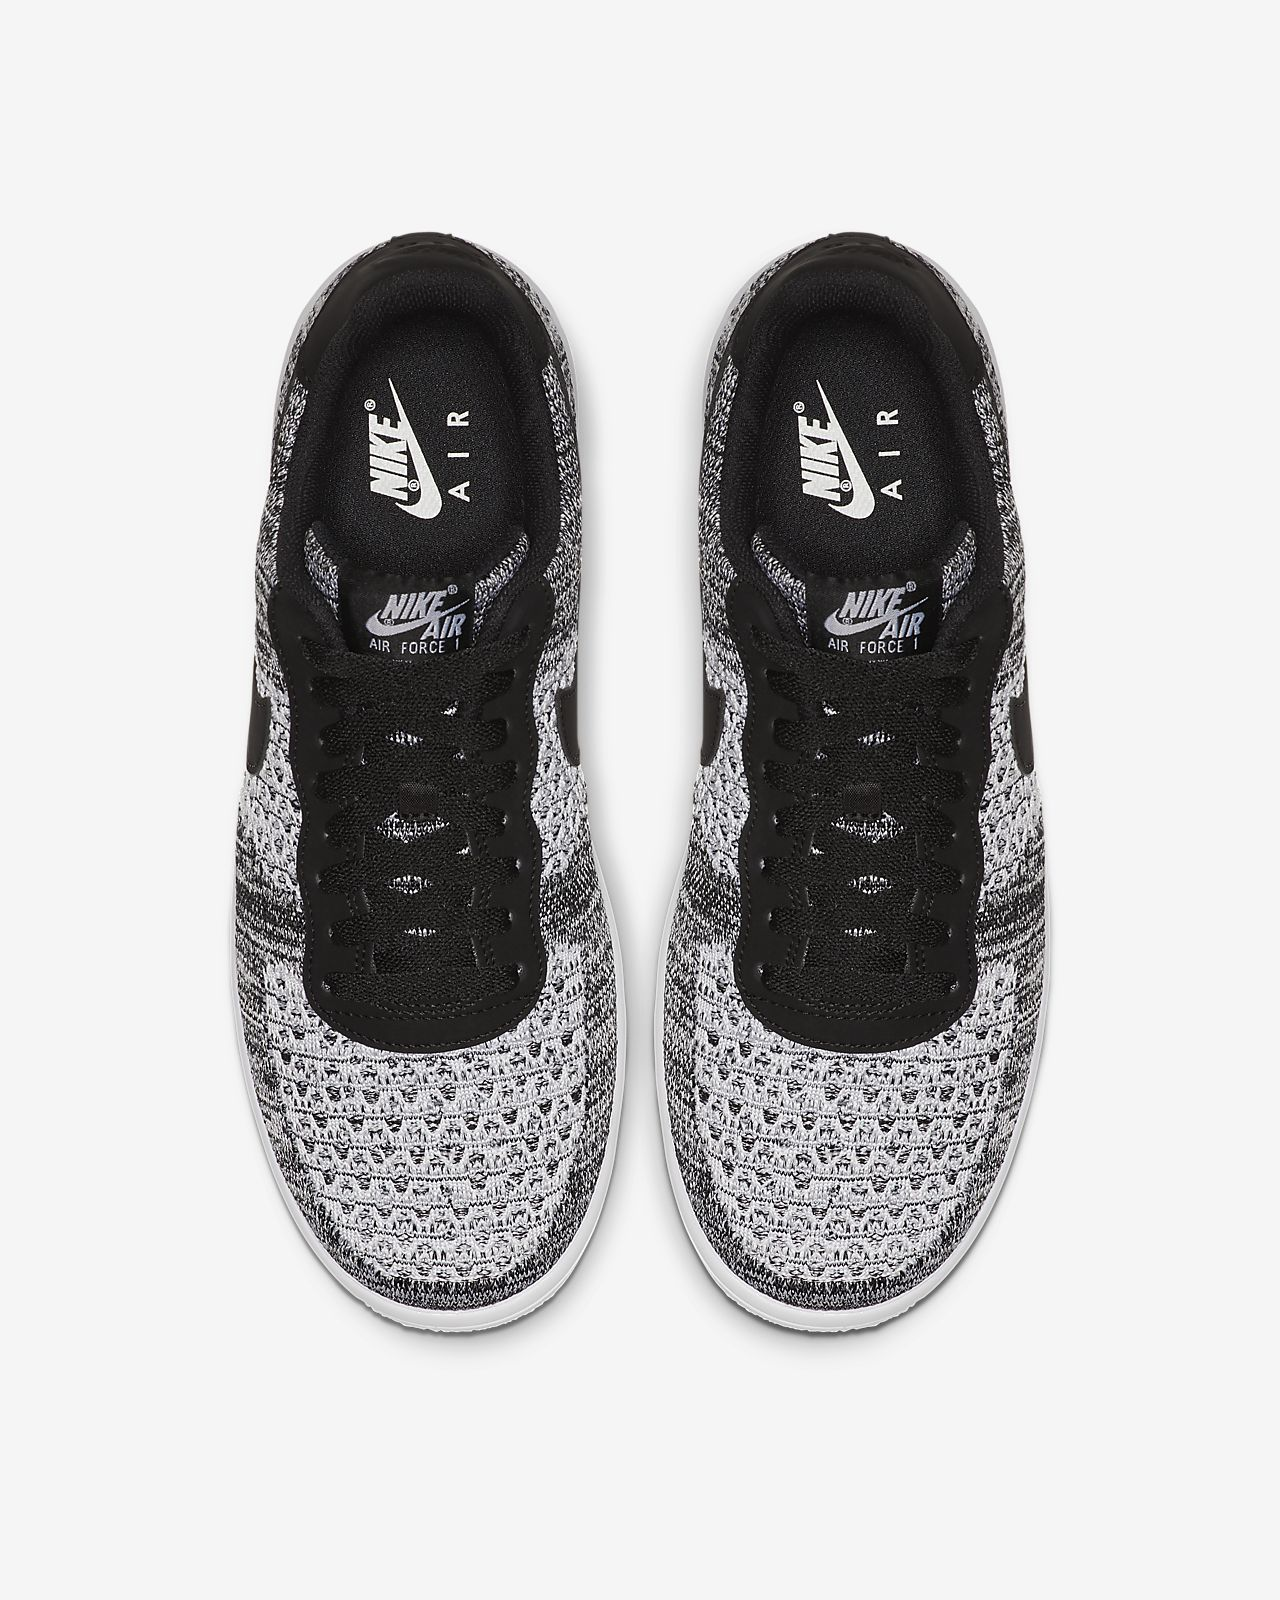 new arrivals 37343 2942d ... Nike Air Force 1 Flyknit 2.0 Herrenschuh